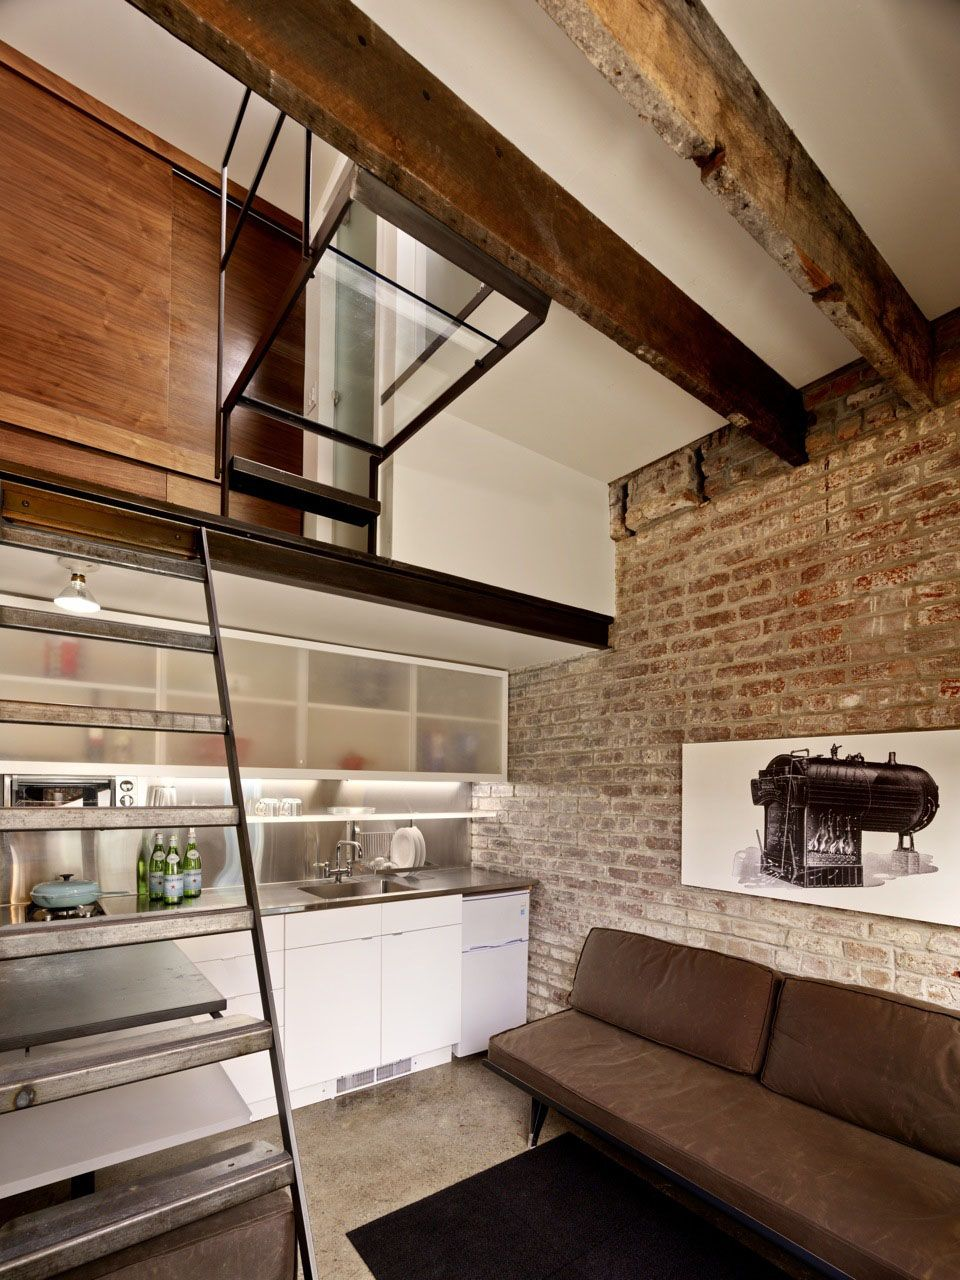 160 square foot small apartment in a brick house - san francisco